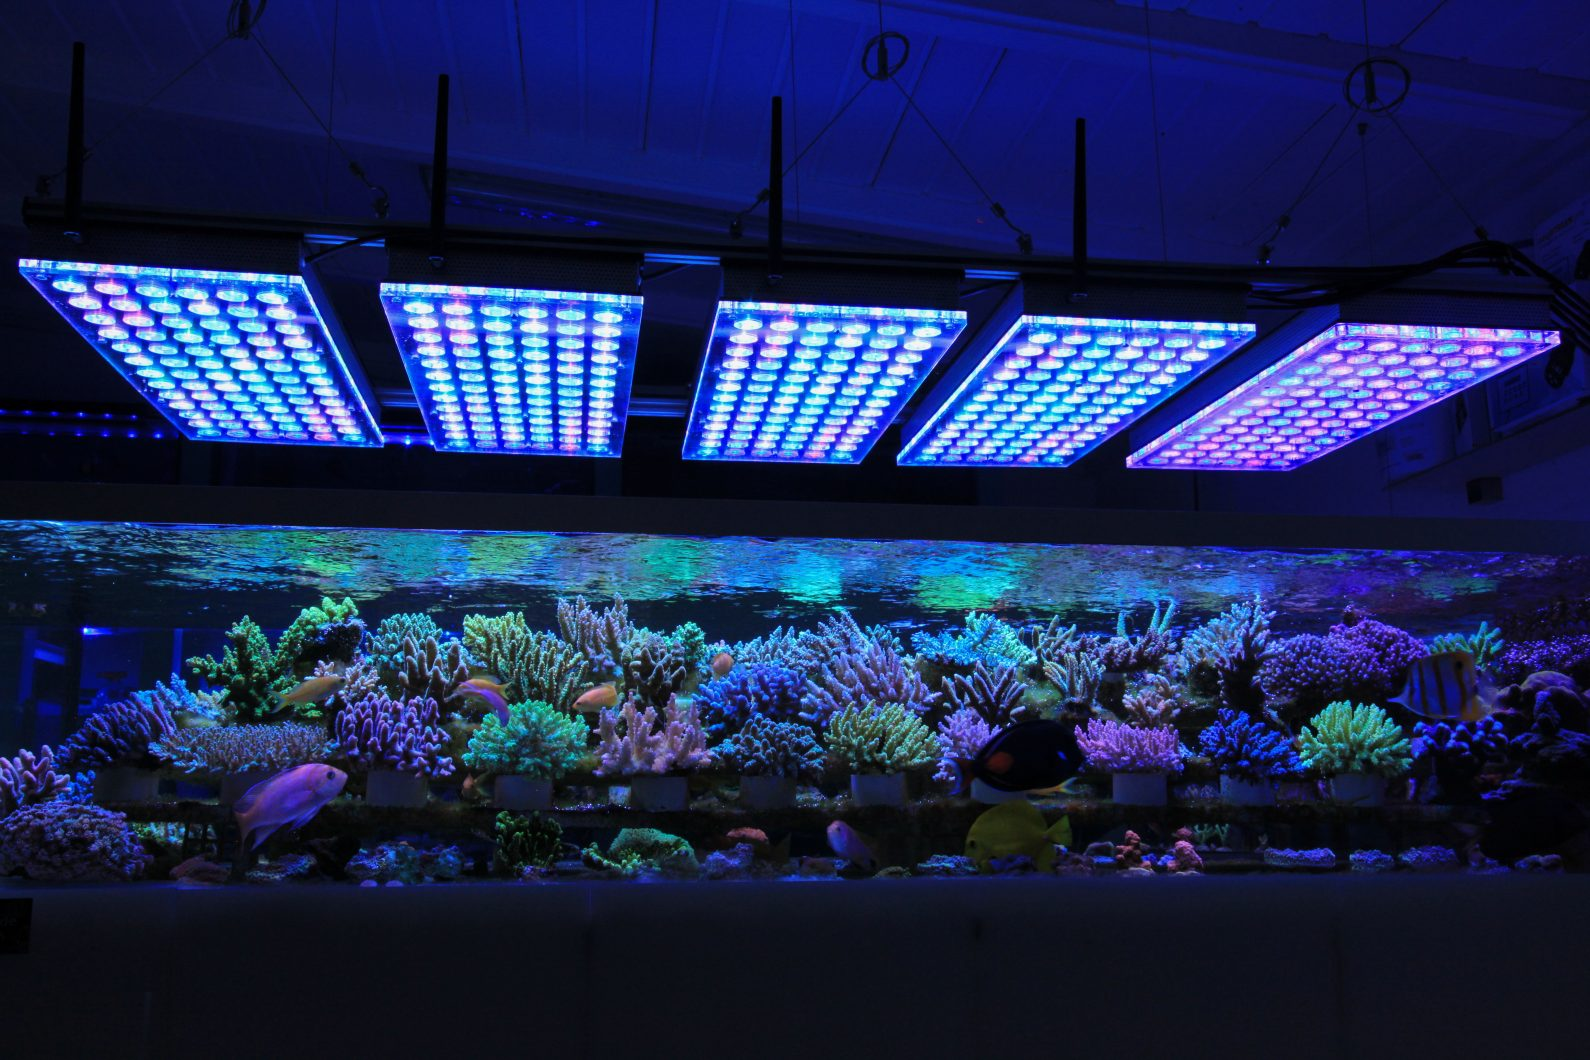 led-aquarium-Reef-light-Orphek-Atlantik-v4